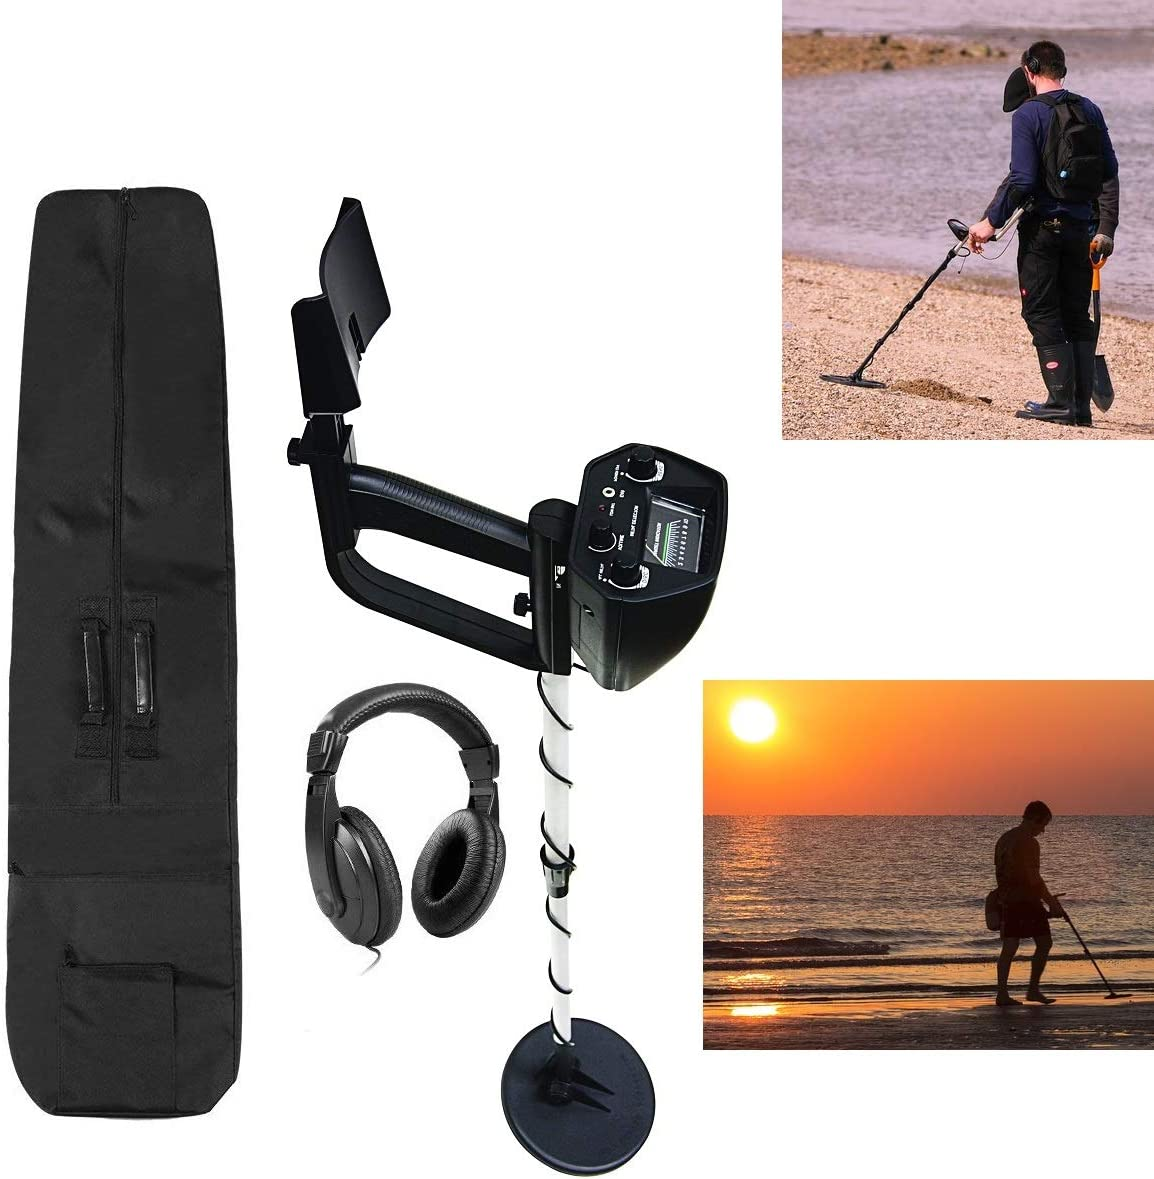 AMERICAN HAWKS Explorer Metal Detector | Arm Support, View Meter, Waterproof Search Coil, Headphone, Bag, Batteries | Gold Silver Bronze Platinum | ...